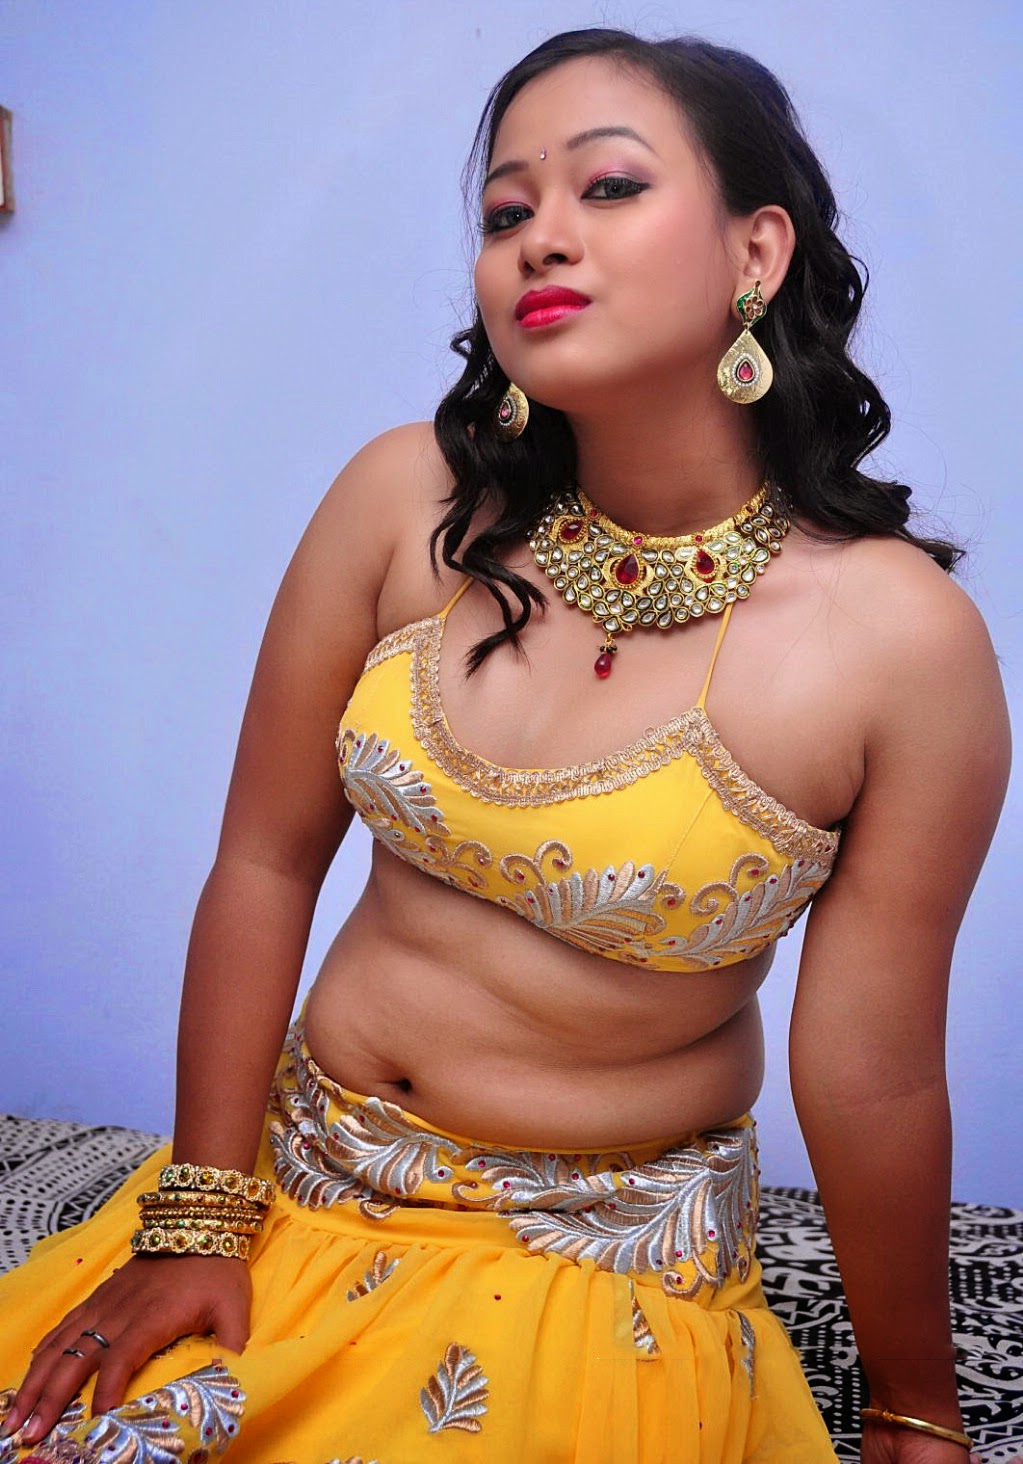 Malayalam dancer navel show